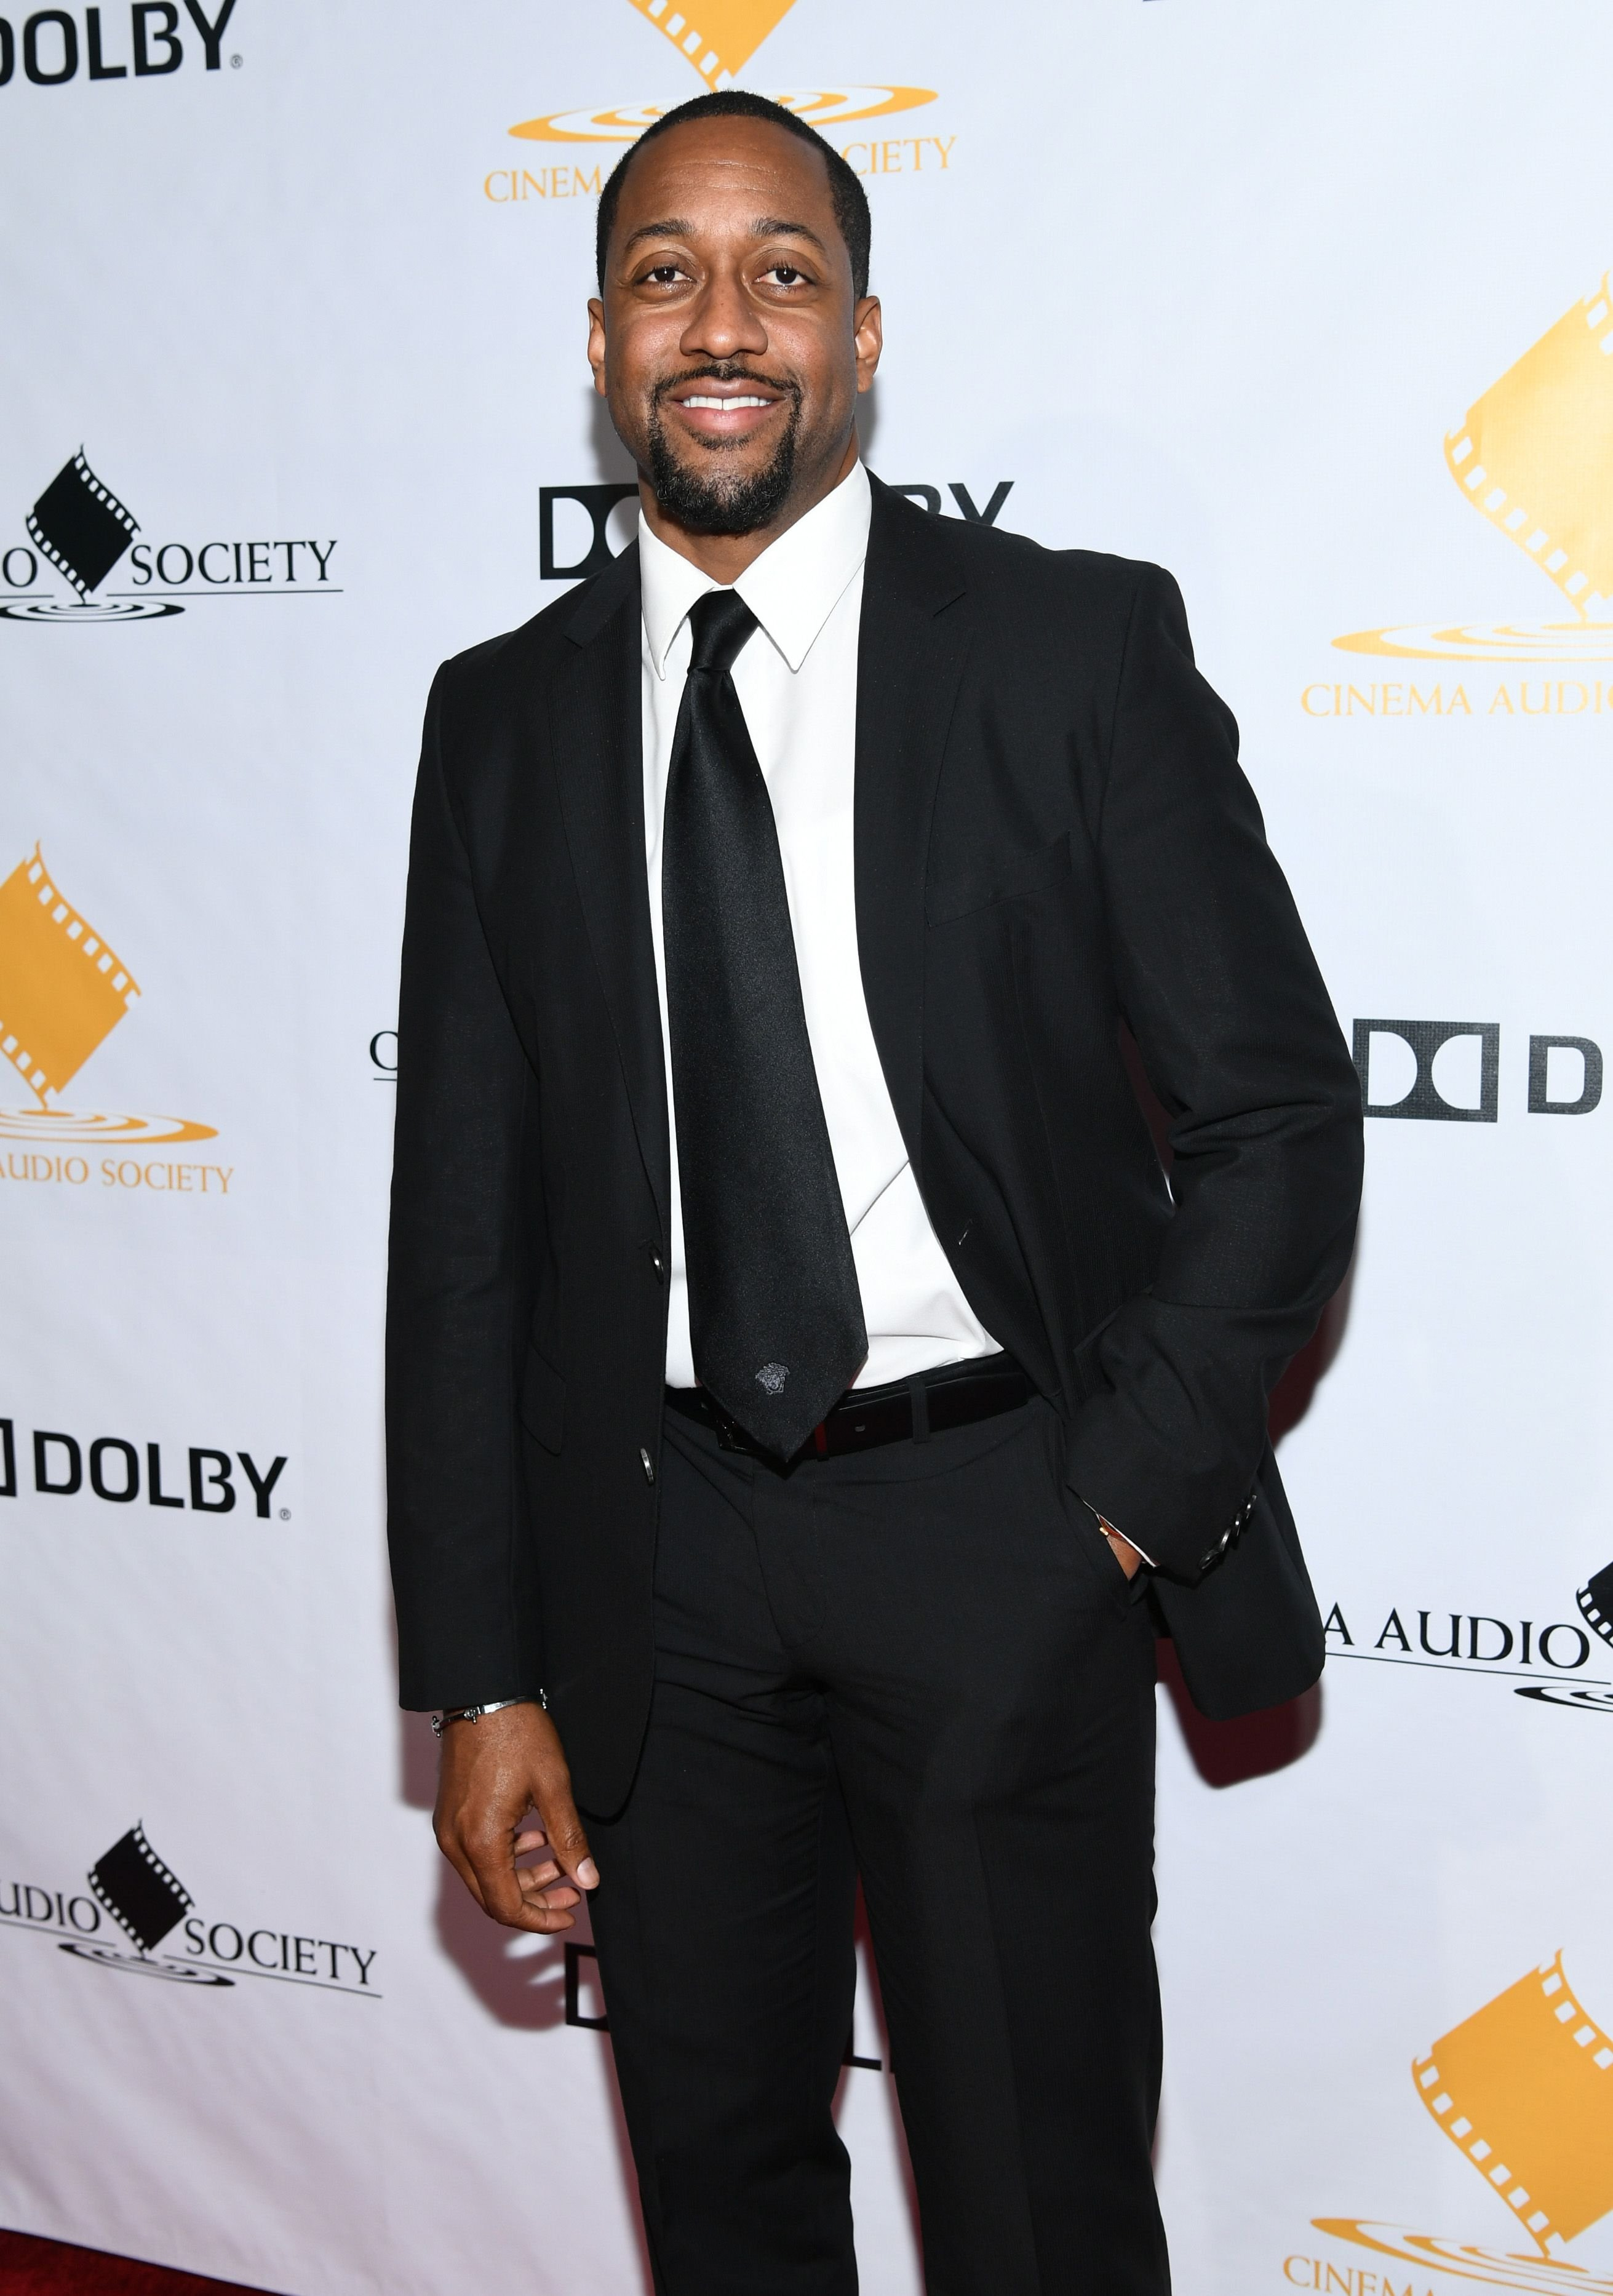 Jaleel White at the annual Cinema Audio Society on February 24, 2018 in Los Angeles.   Photo: Getty Images